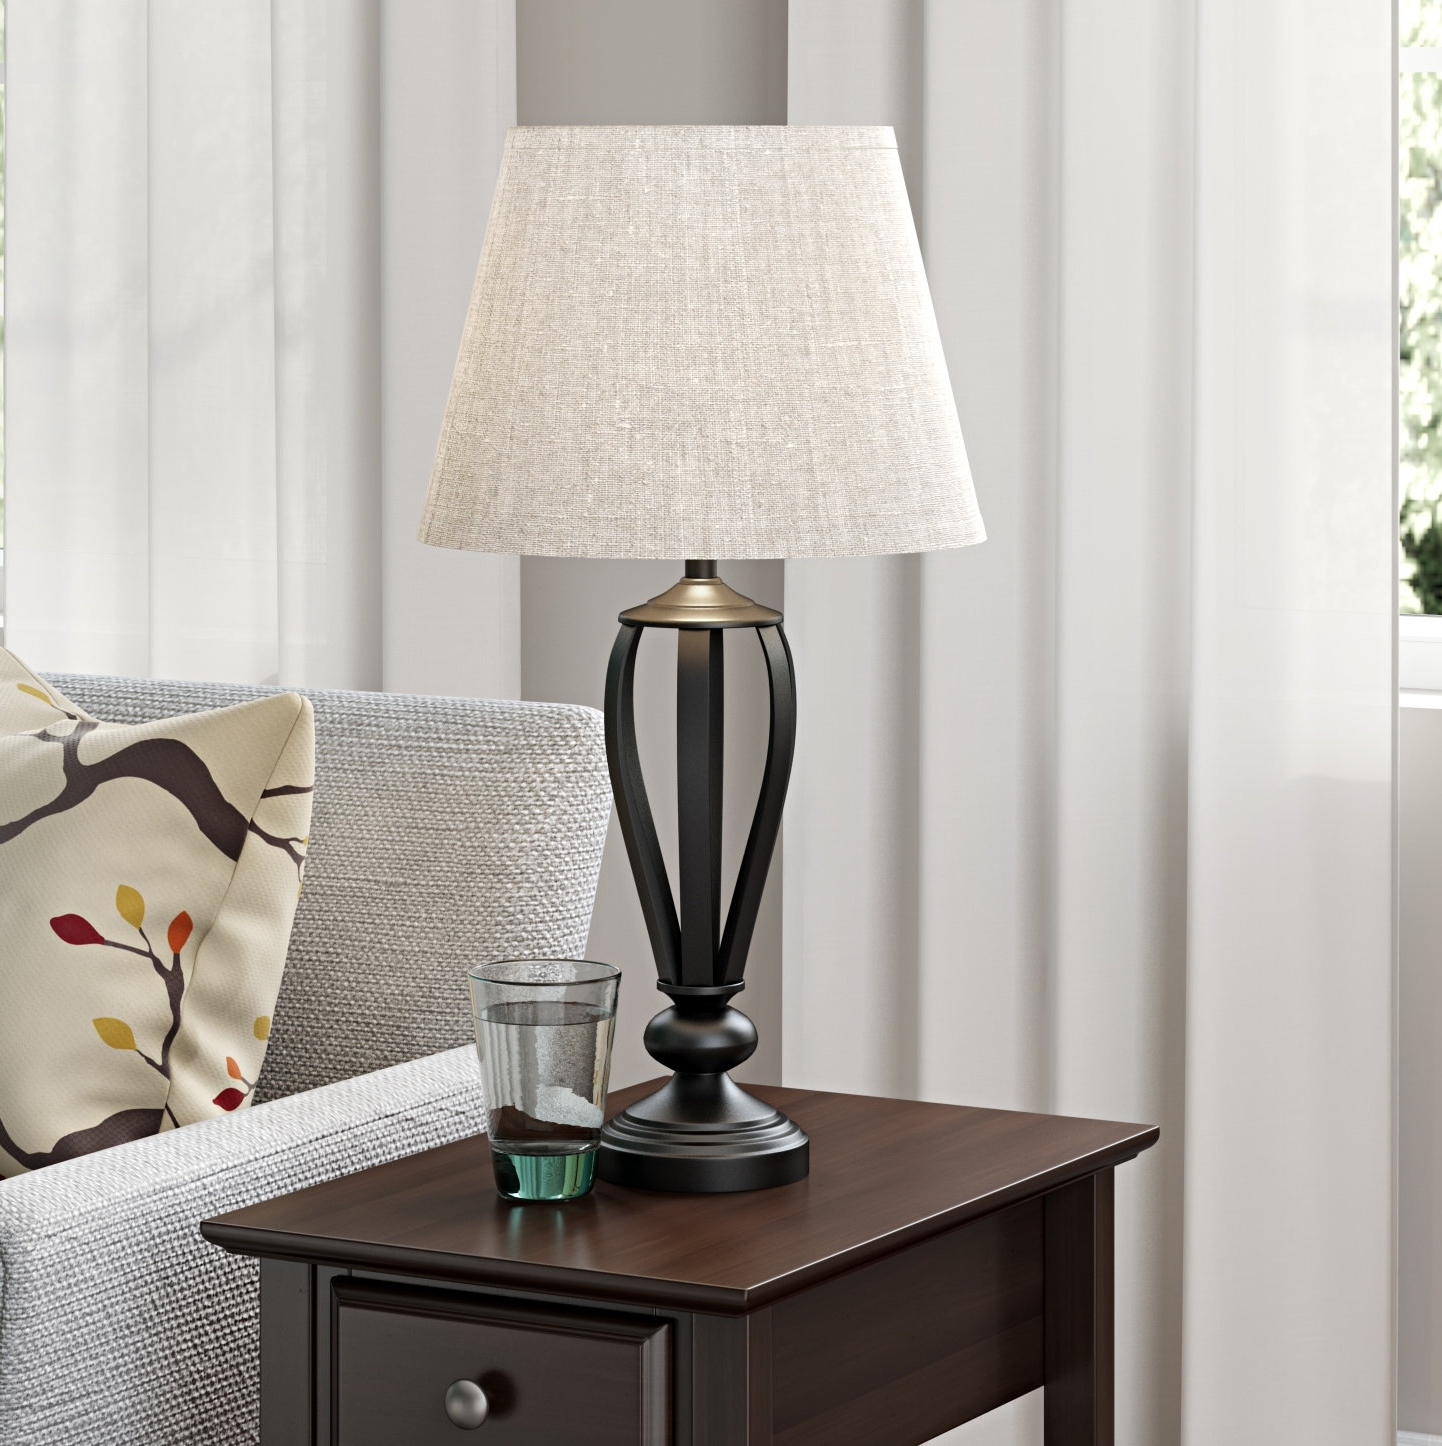 Fashionable Table Lamps You'll Love (View 6 of 20)